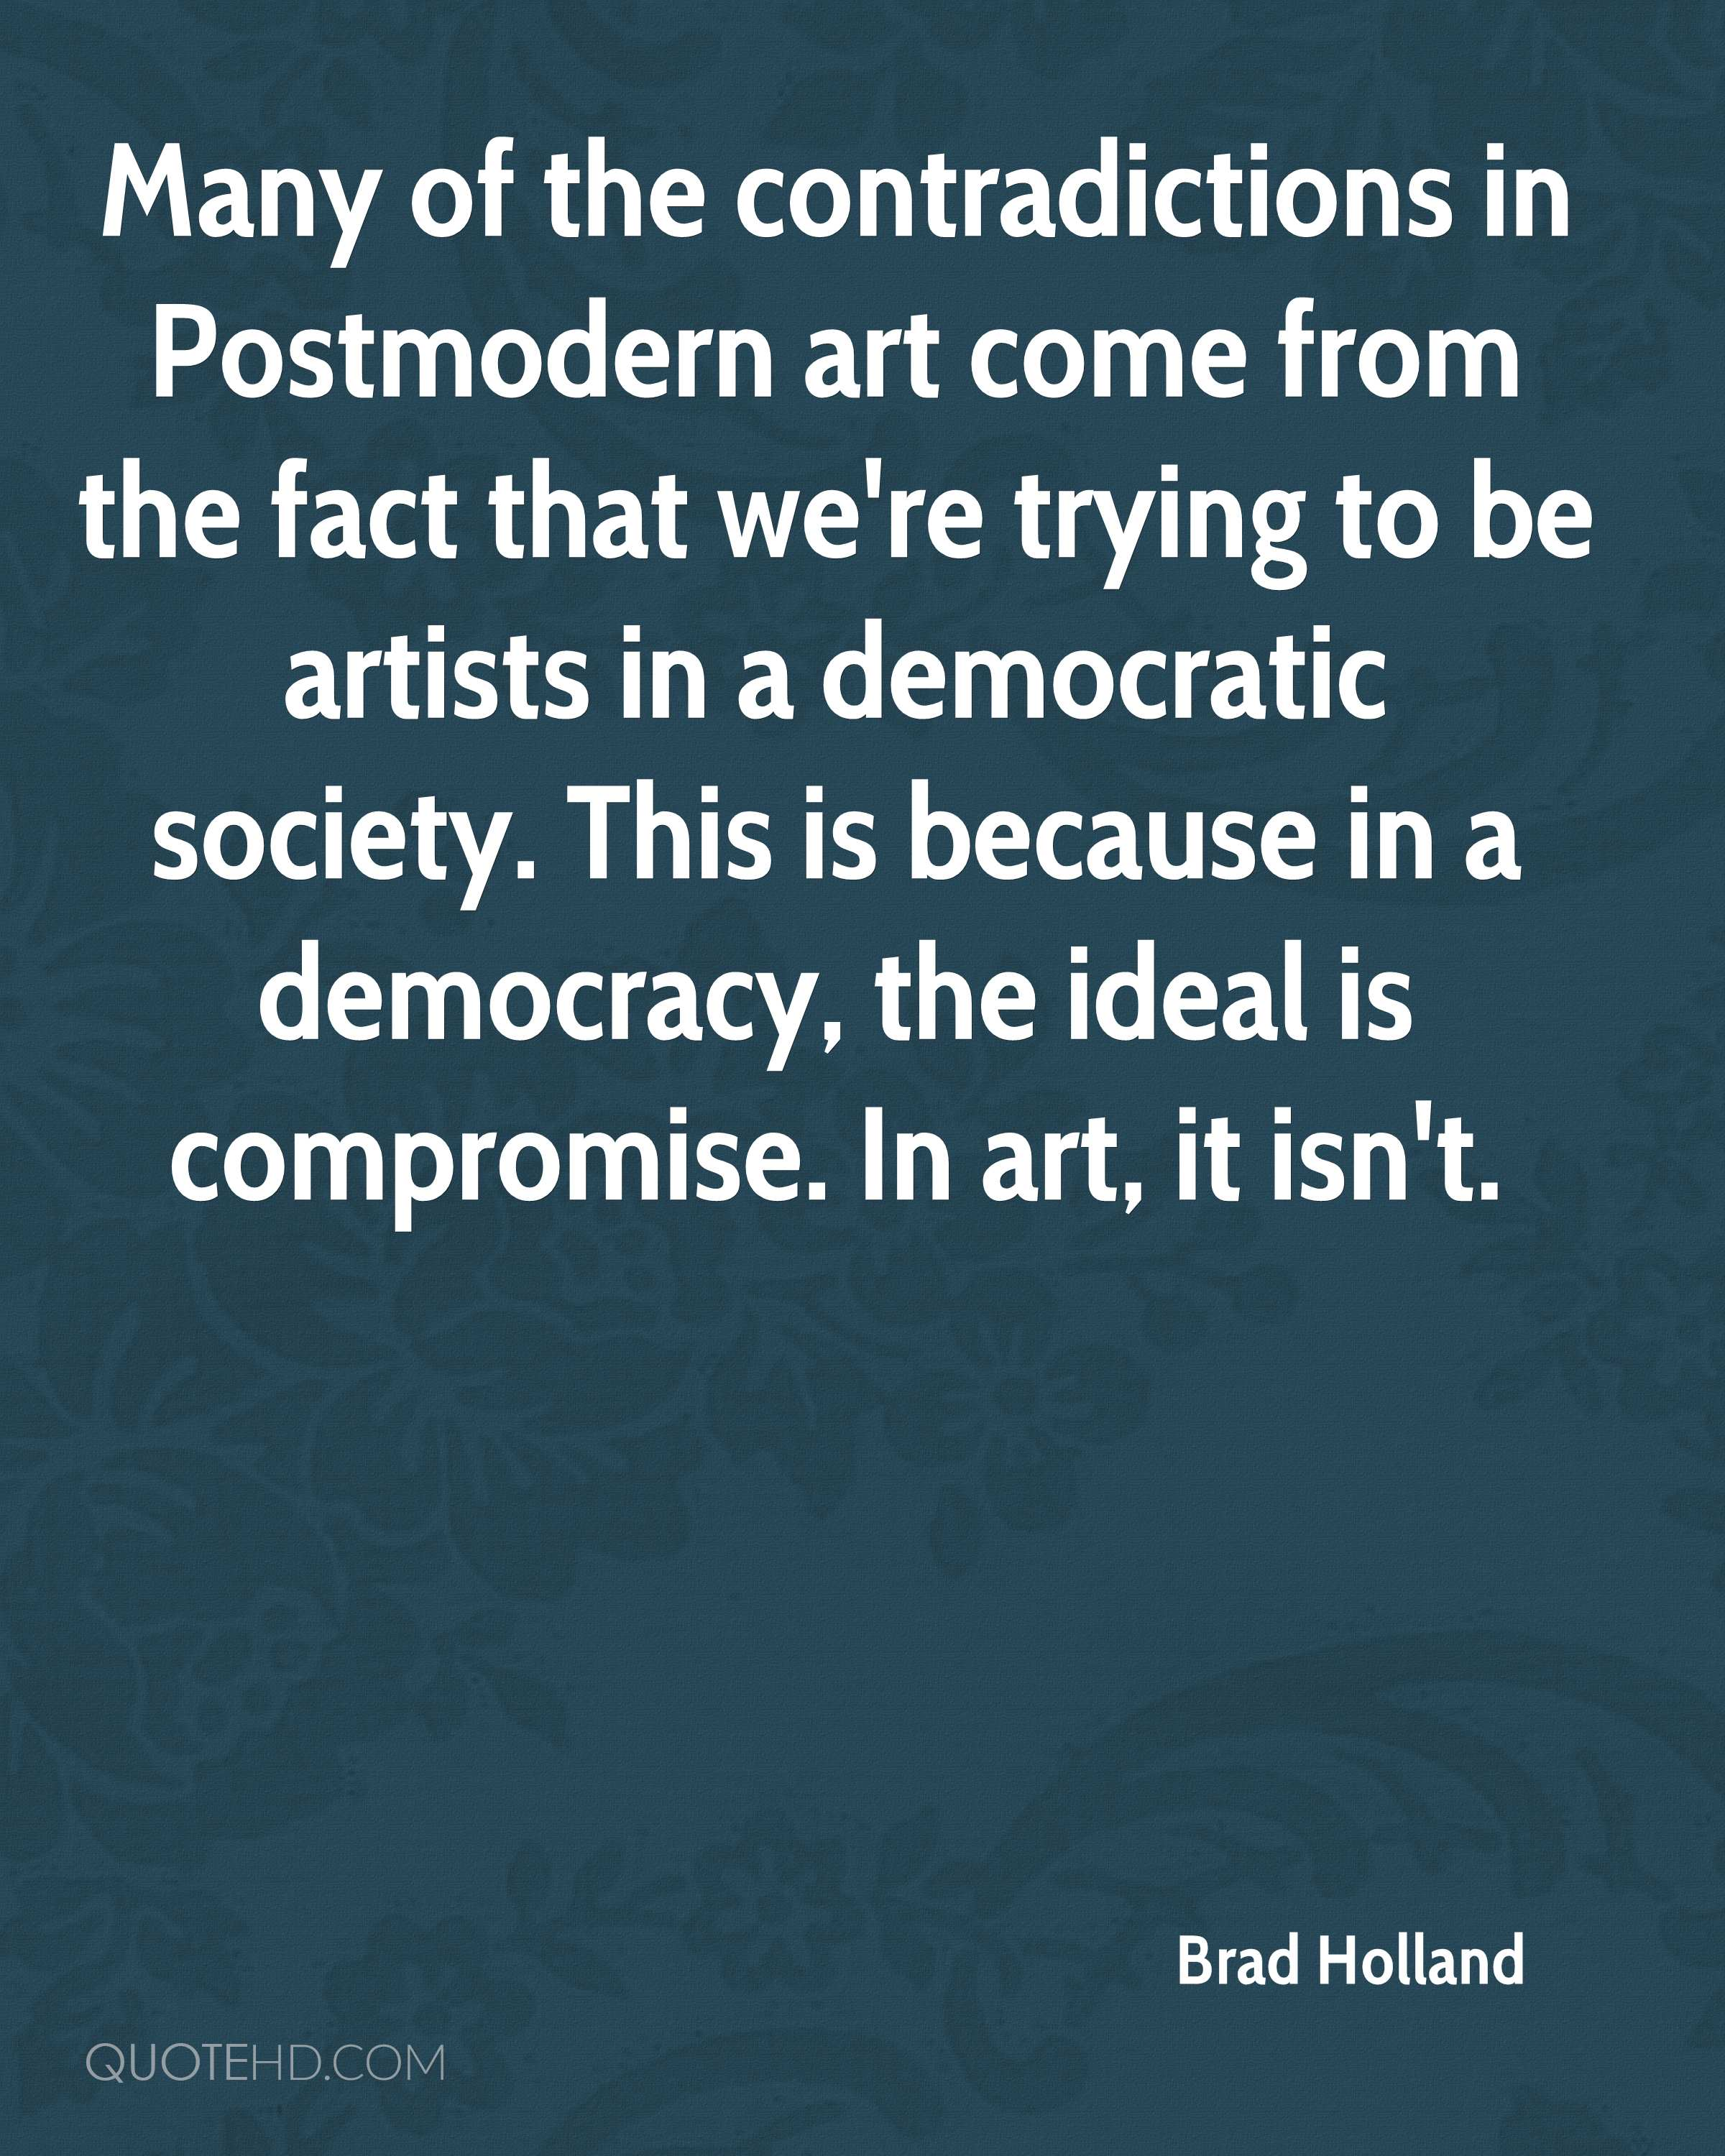 Many of the contradictions in Postmodern art come from the fact that we're trying to be artists in a democratic society. This is because in a democracy, the ideal is compromise. In art, it isn't.